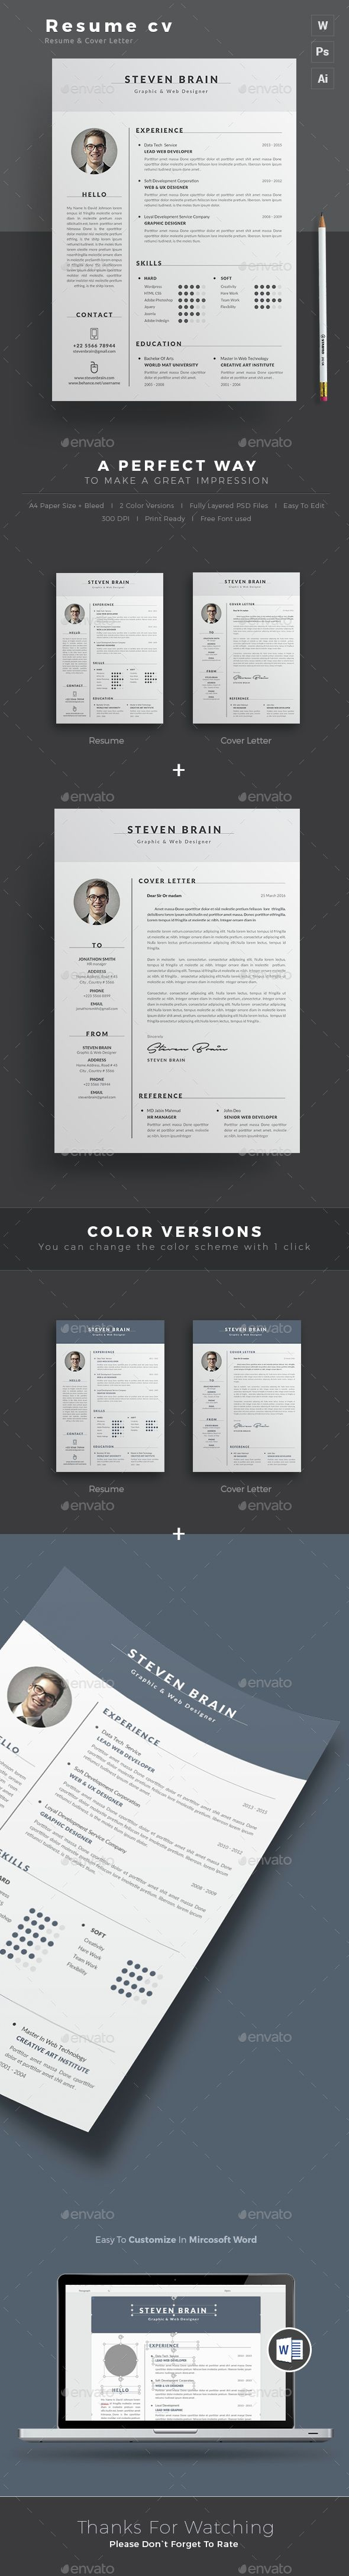 Resume Creative Resume Template CV